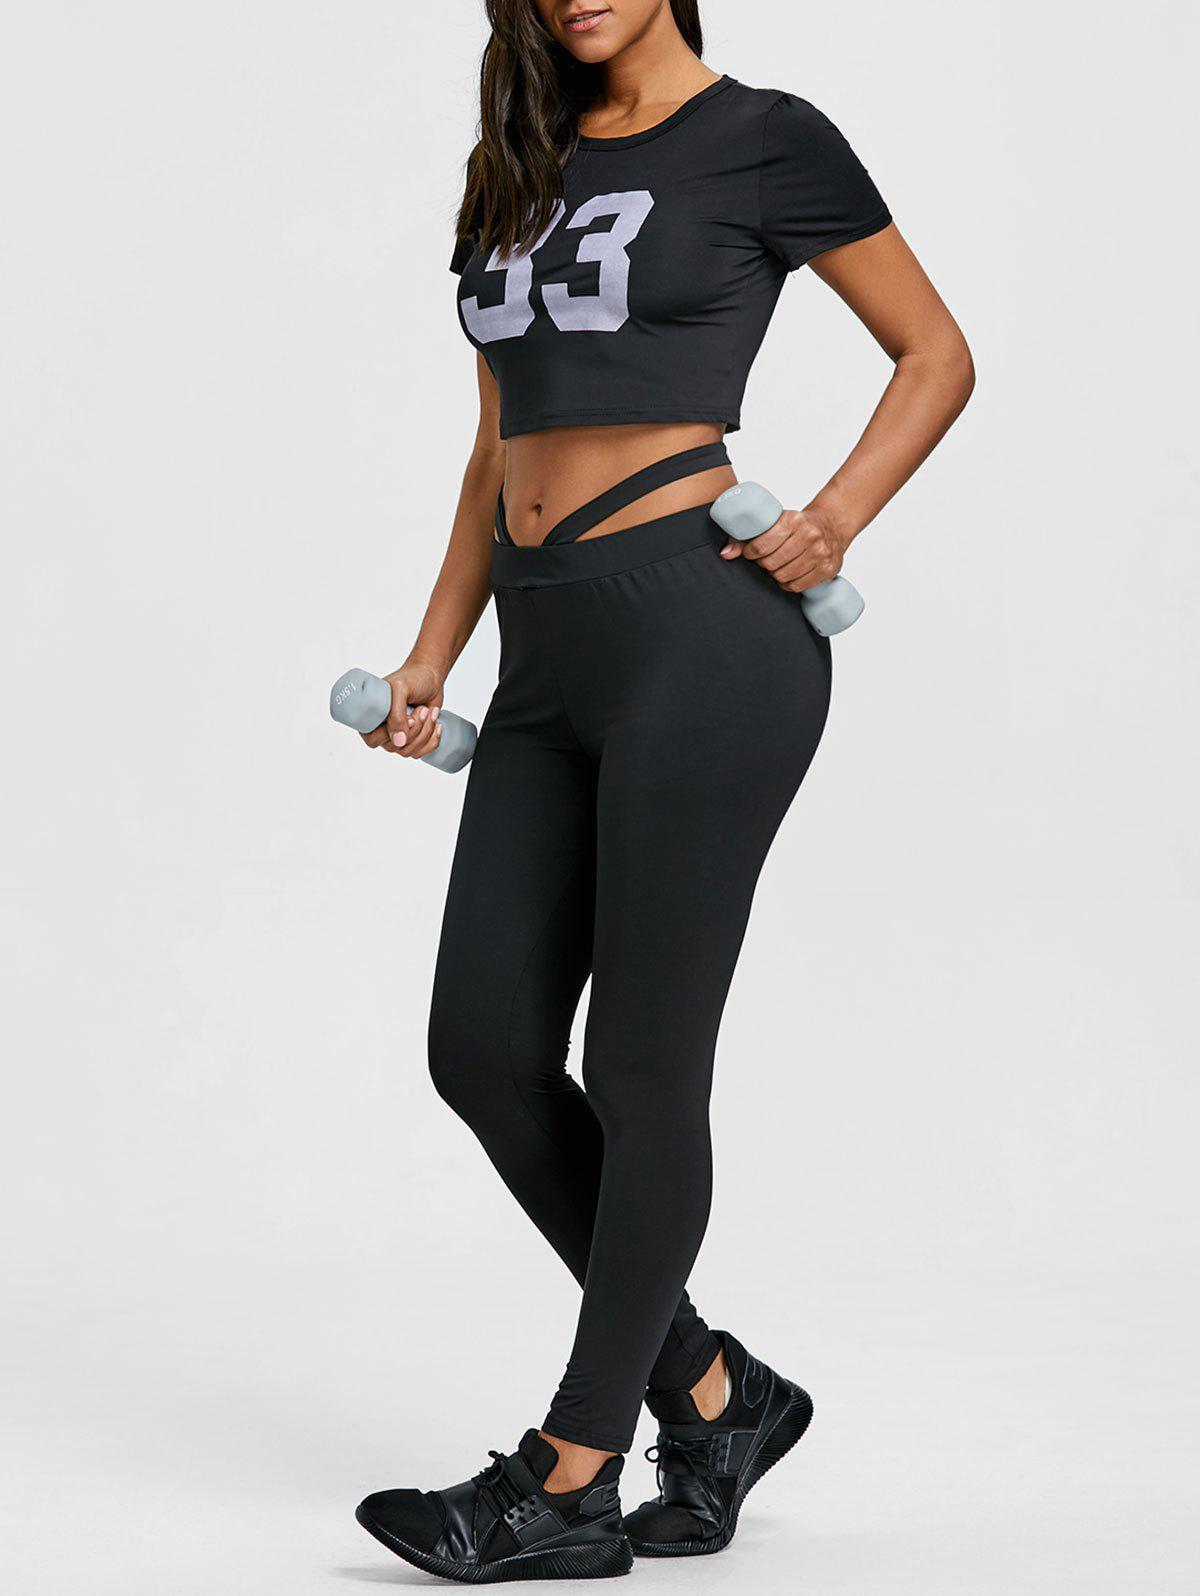 Trendy Letter Print Cropped Top with Gym Leggings Set